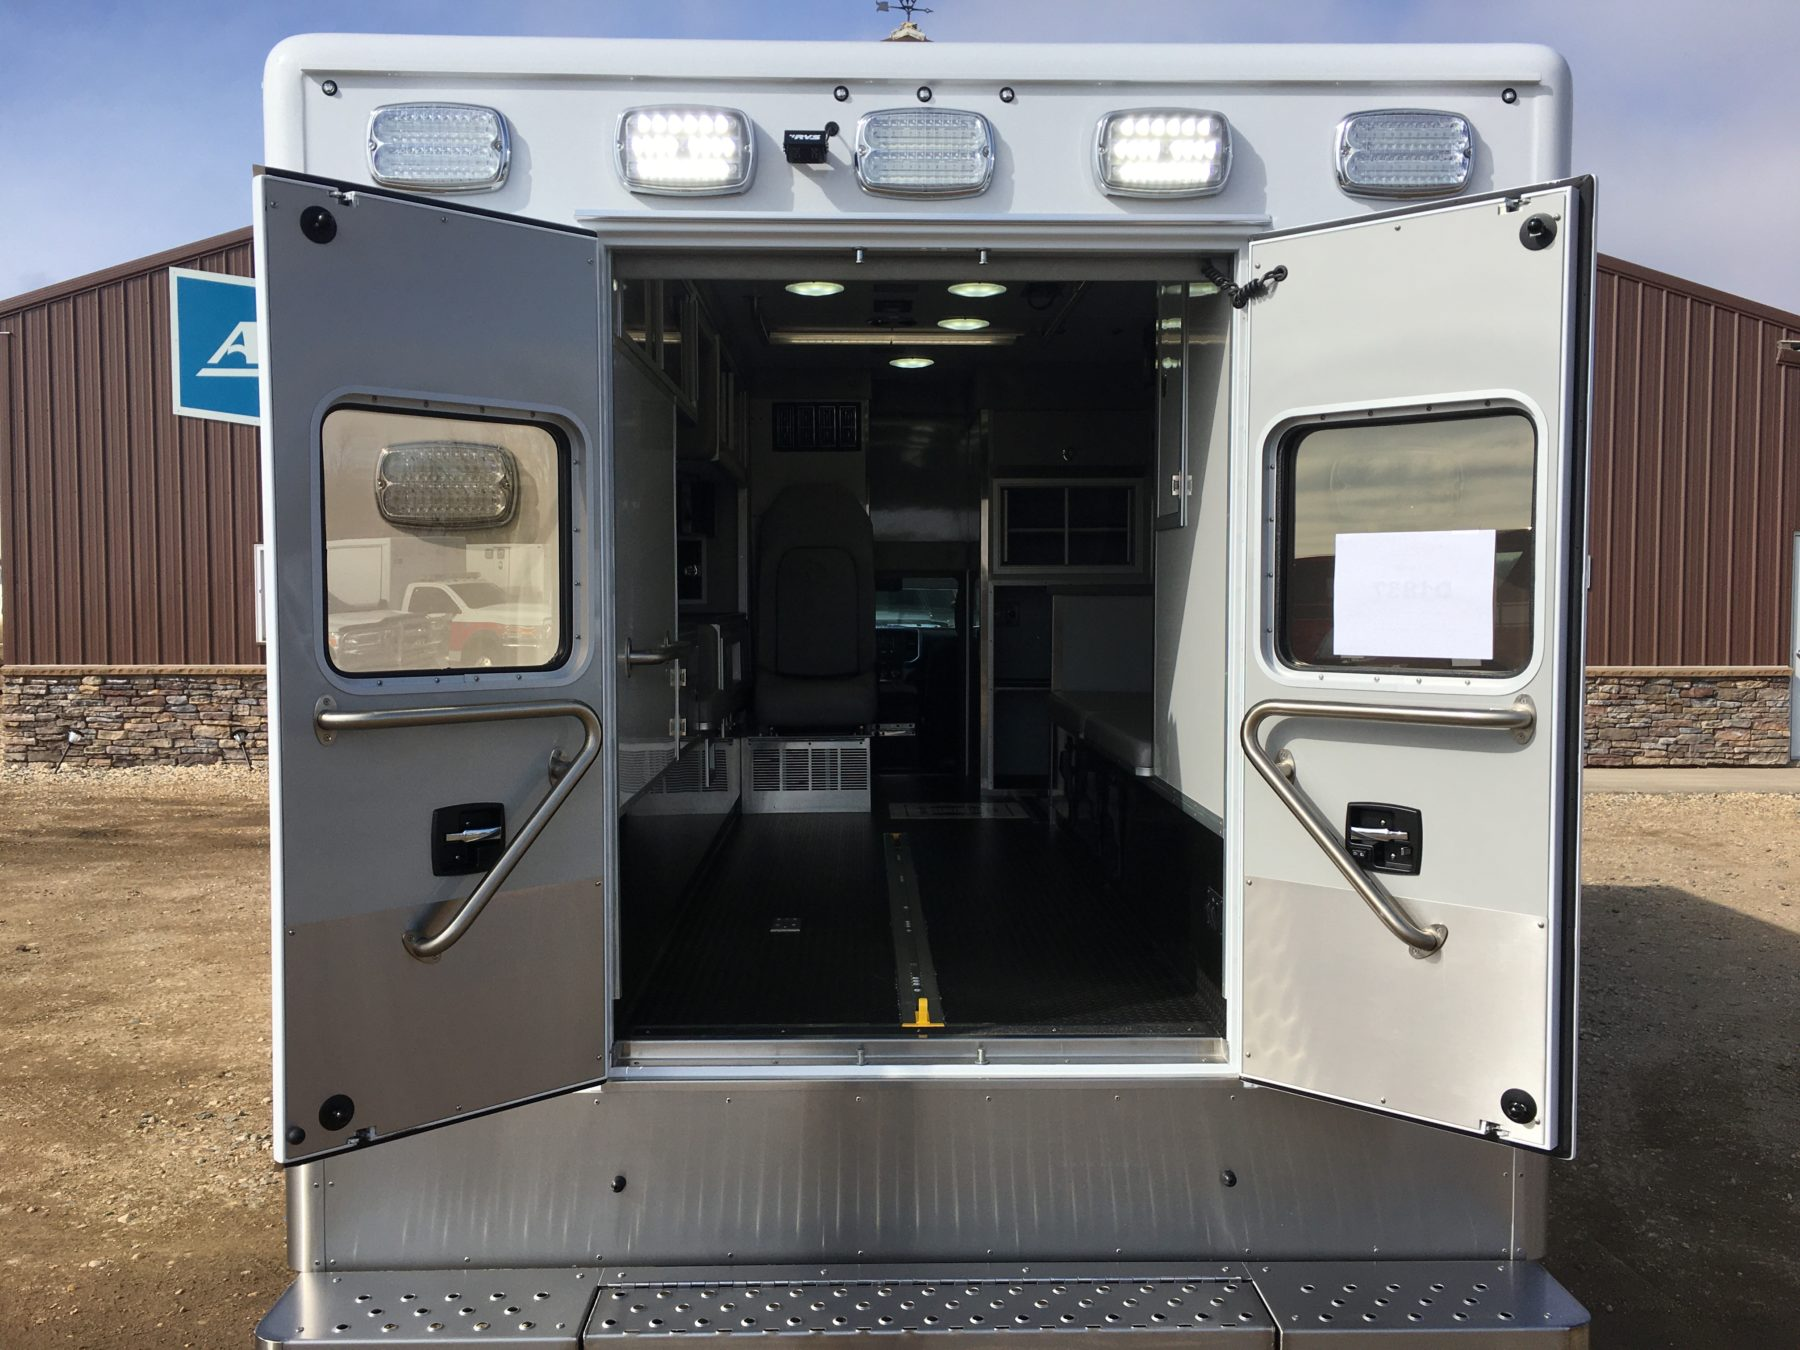 2019 Ram 4500 4x4 Heavy Duty Ambulance For Sale – Picture 9